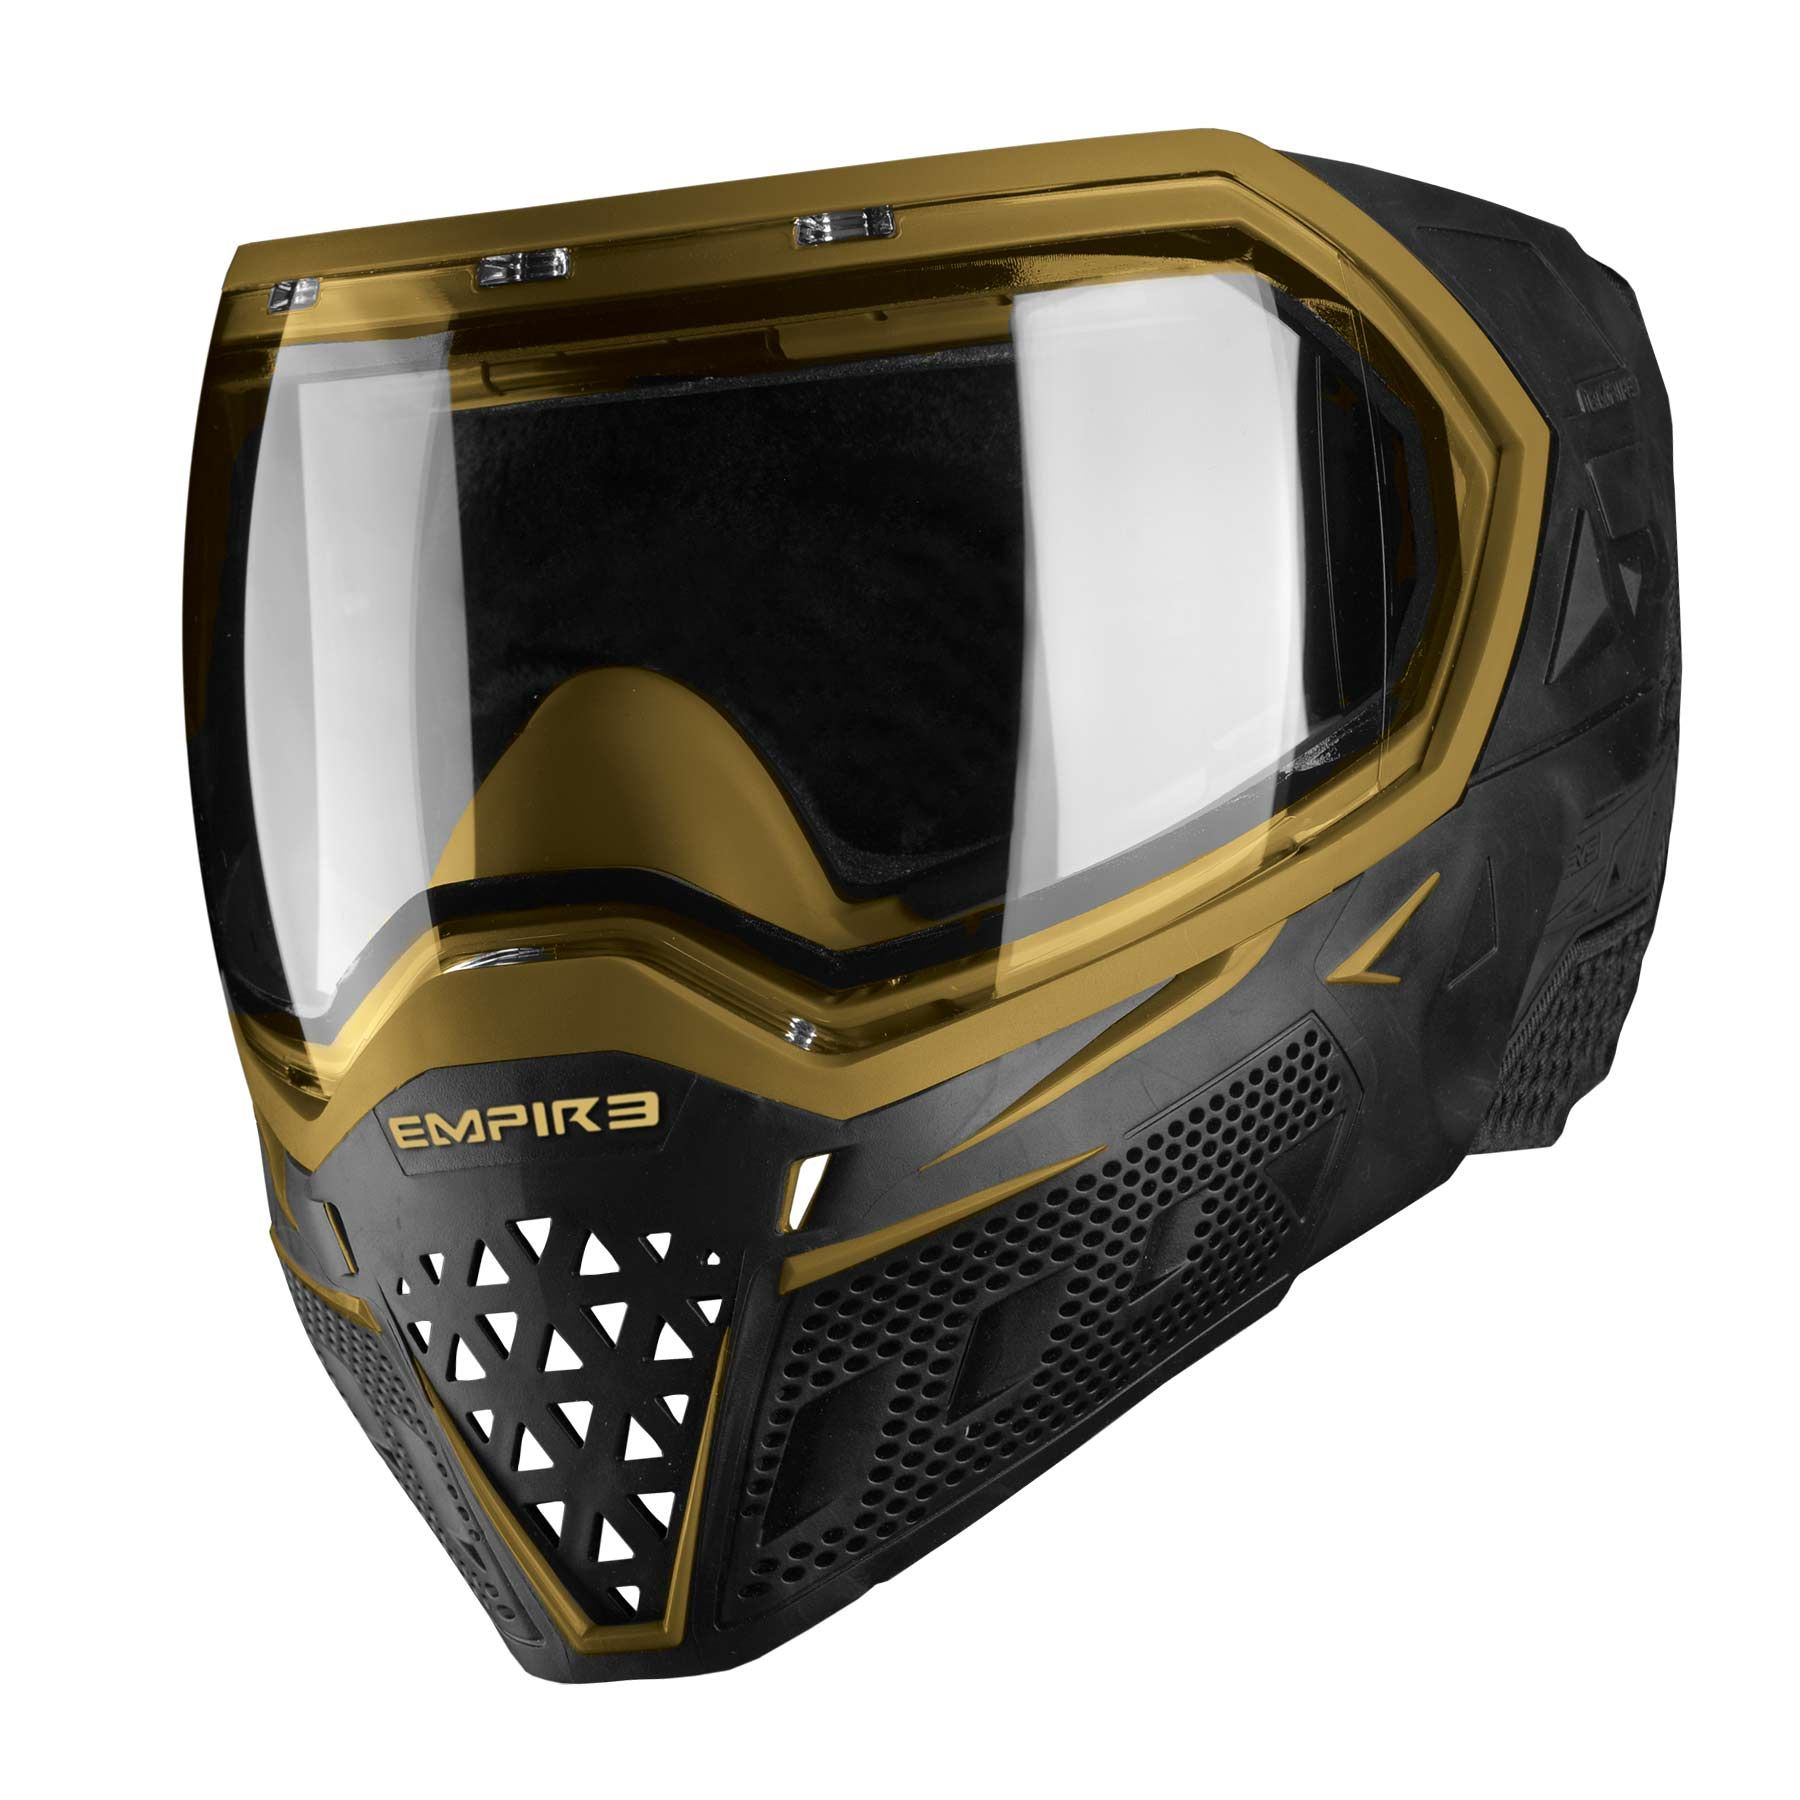 Empire EVS Thermal Paintball Goggles Black Gold